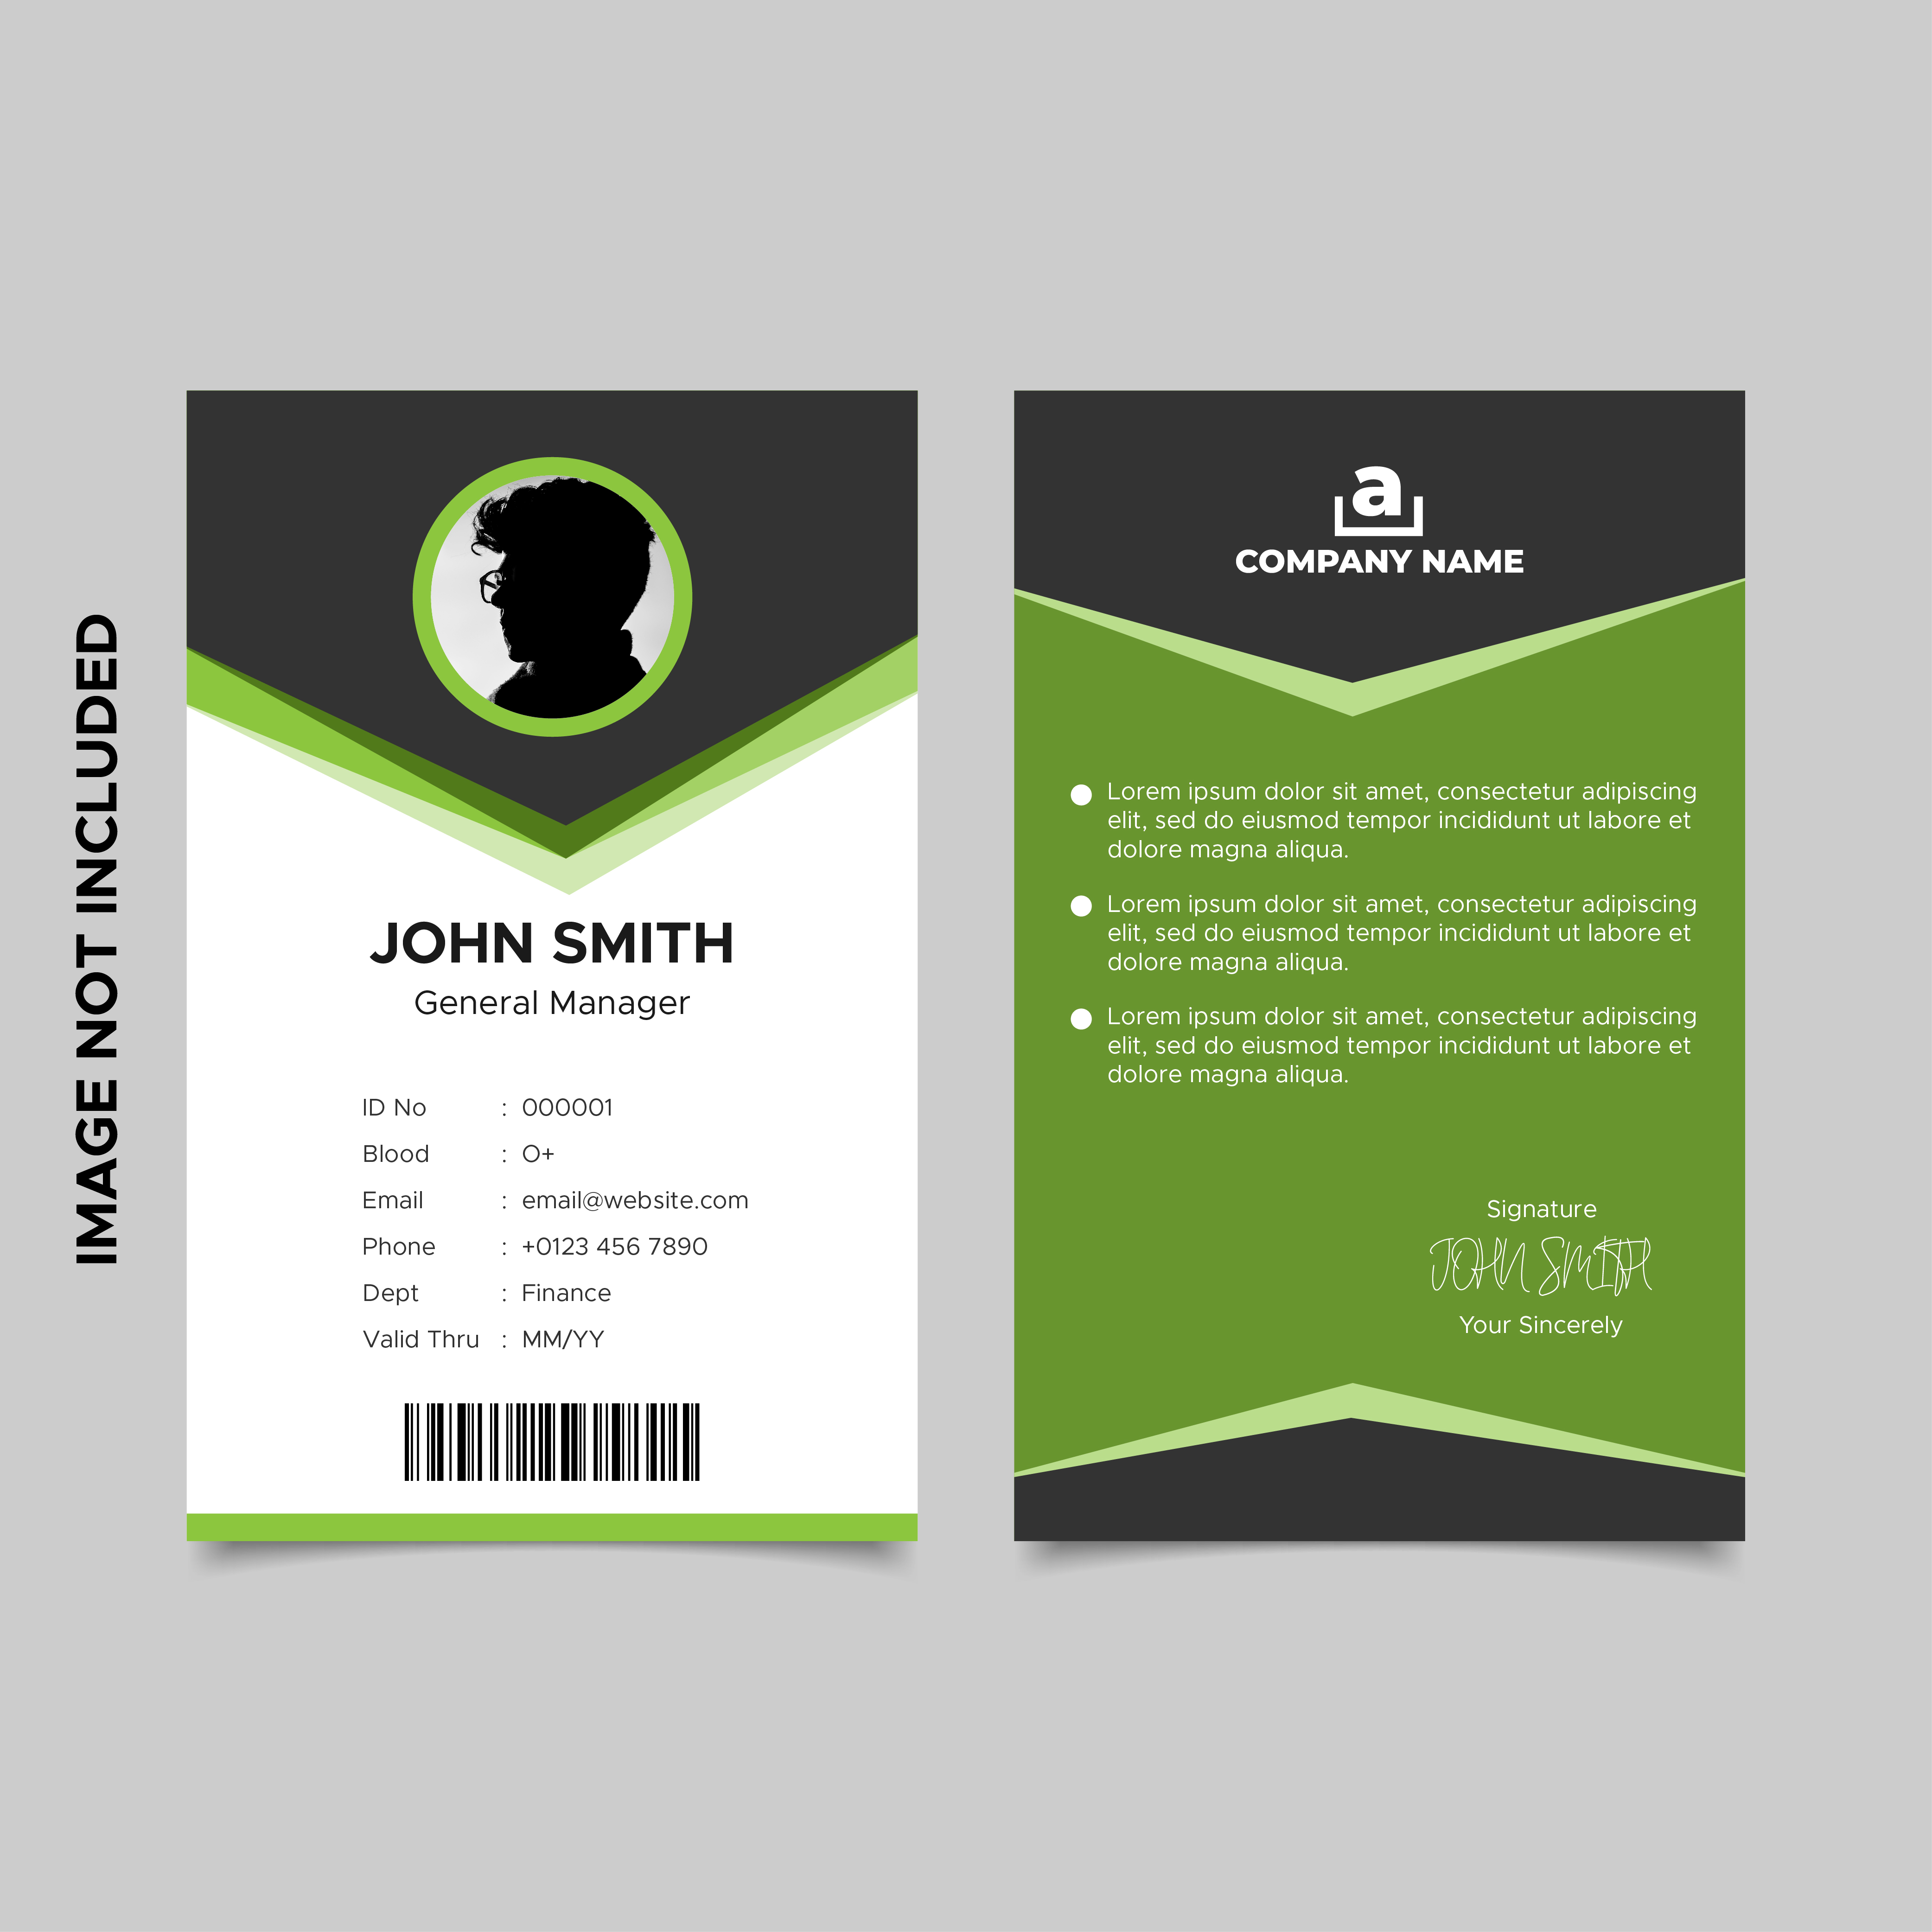 Company Id Card Template from static.vecteezy.com